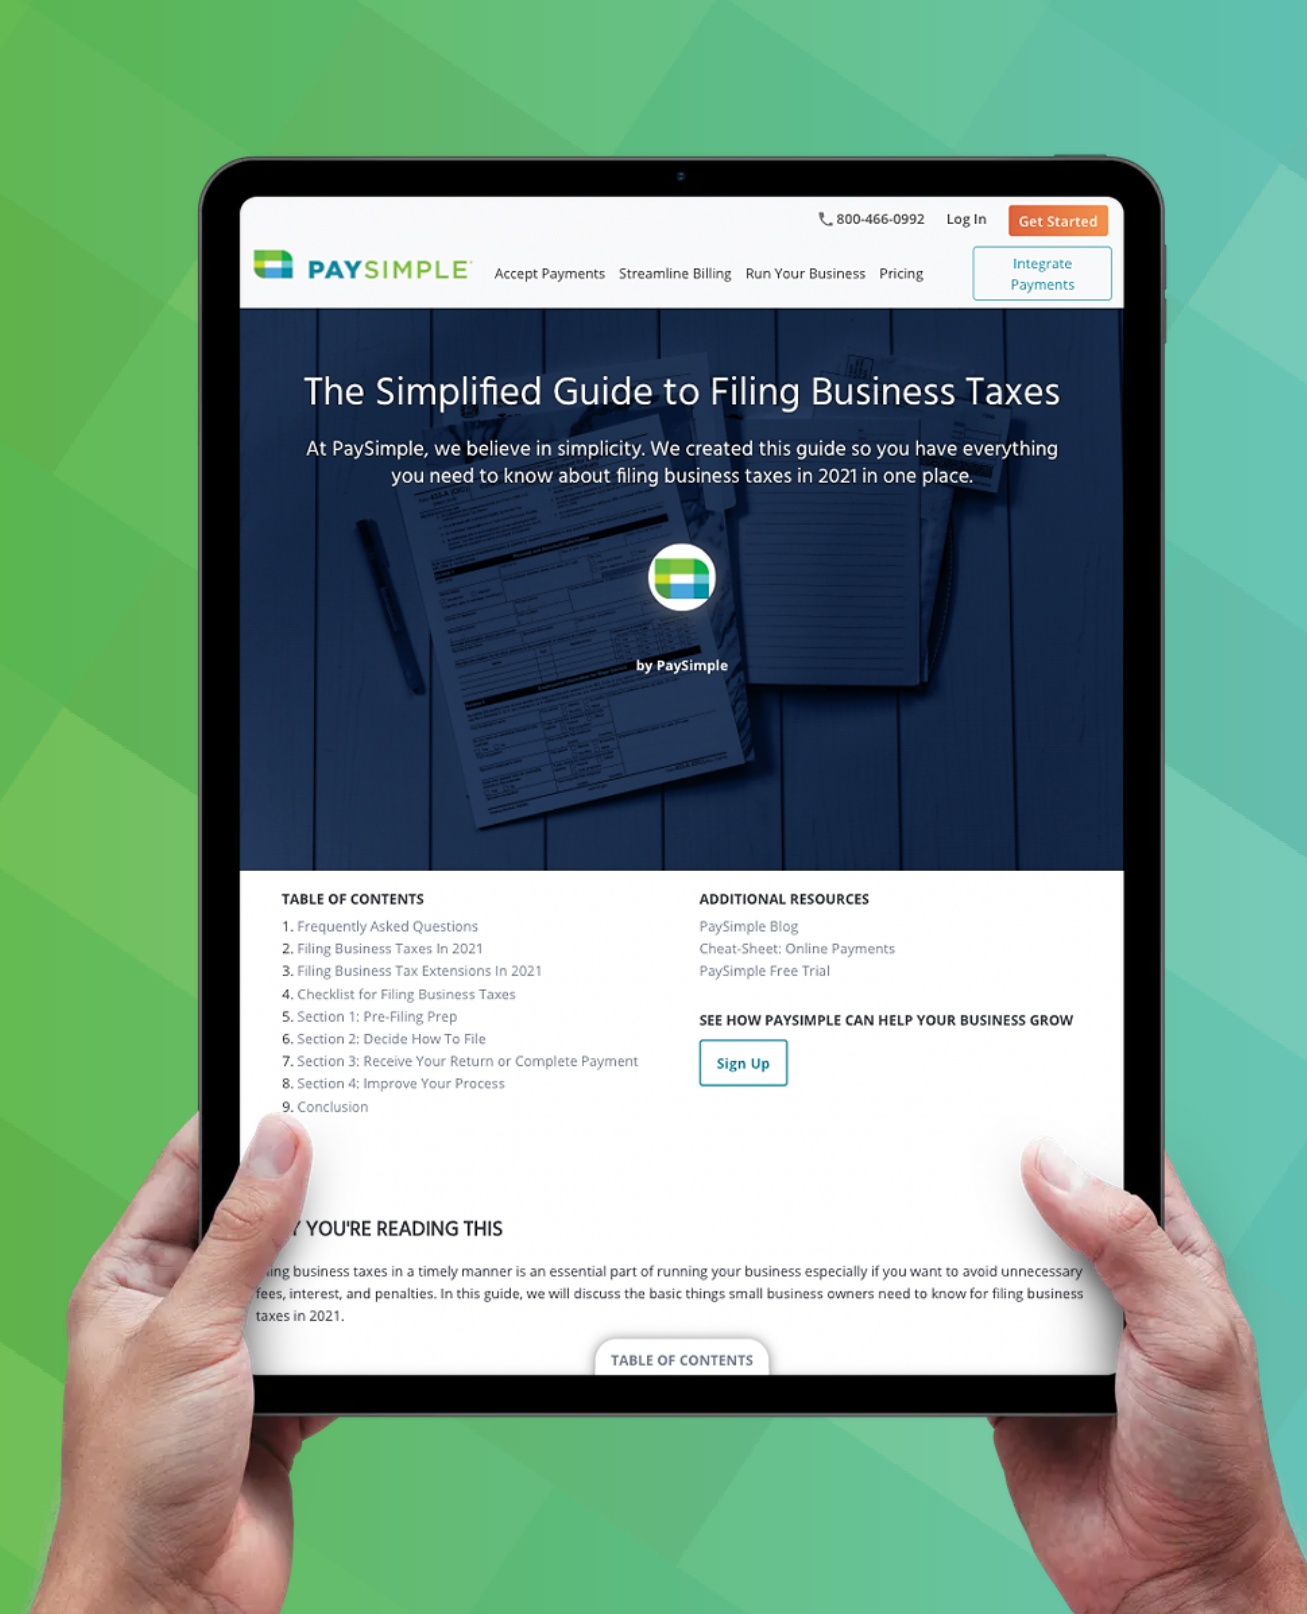 The Simplified Guide to Filing Business Taxes